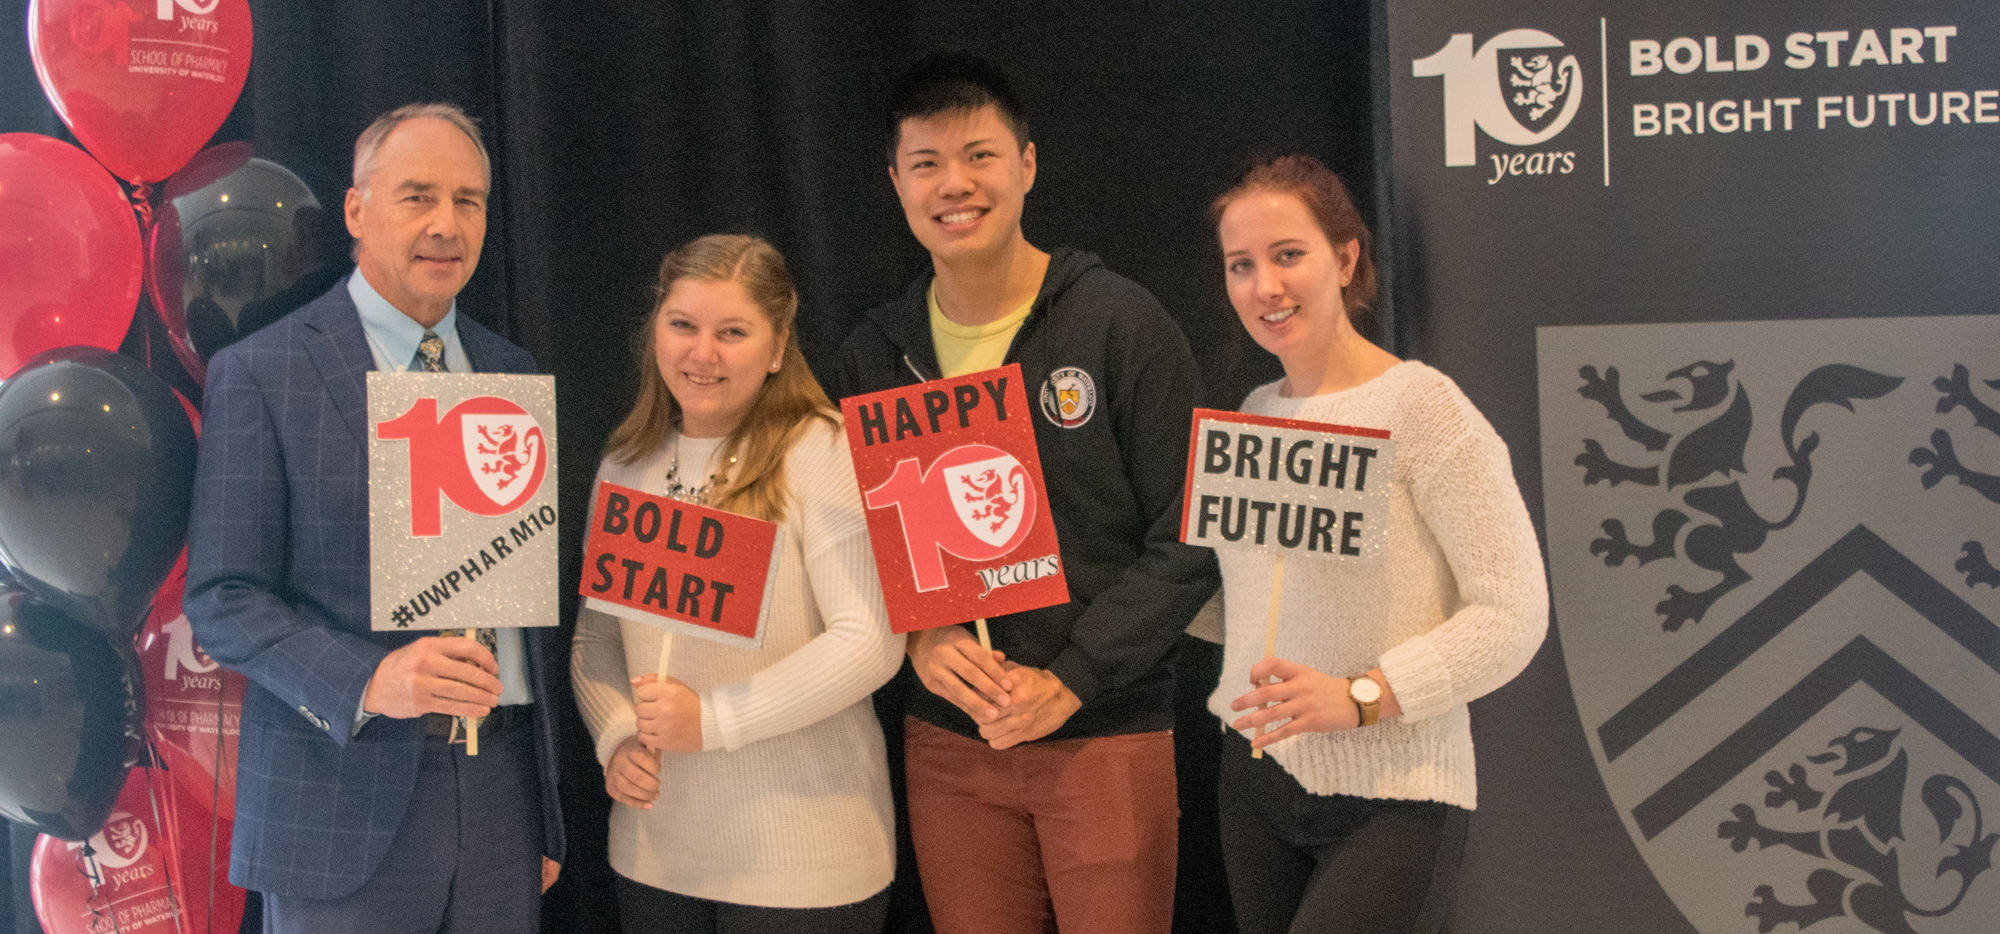 Dave Edwards and 3 students smiling with Bold Start and Bright Future signs.